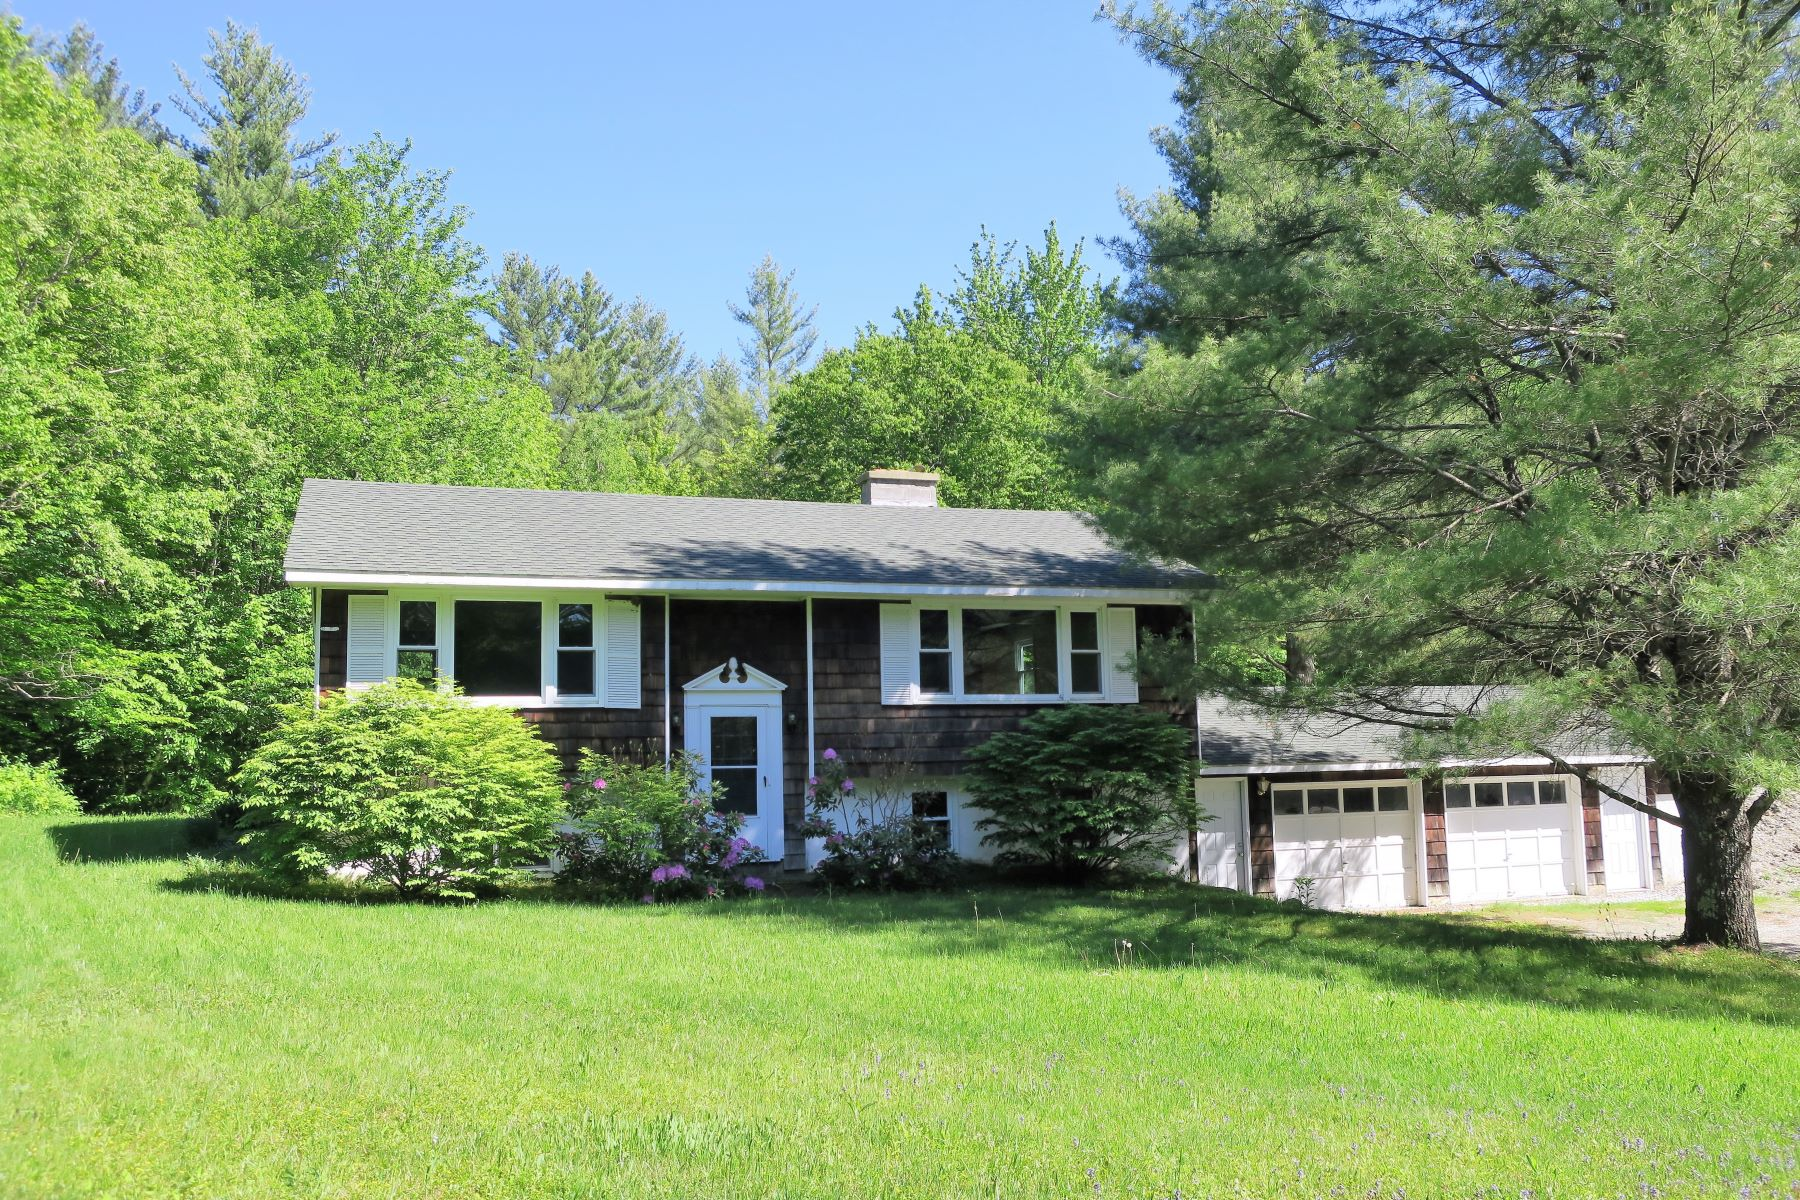 single family homes for Sale at 7642 Vermont Route 30, Jamaica 7642 Vermont Route 30 Jamaica, Vermont 05343 United States